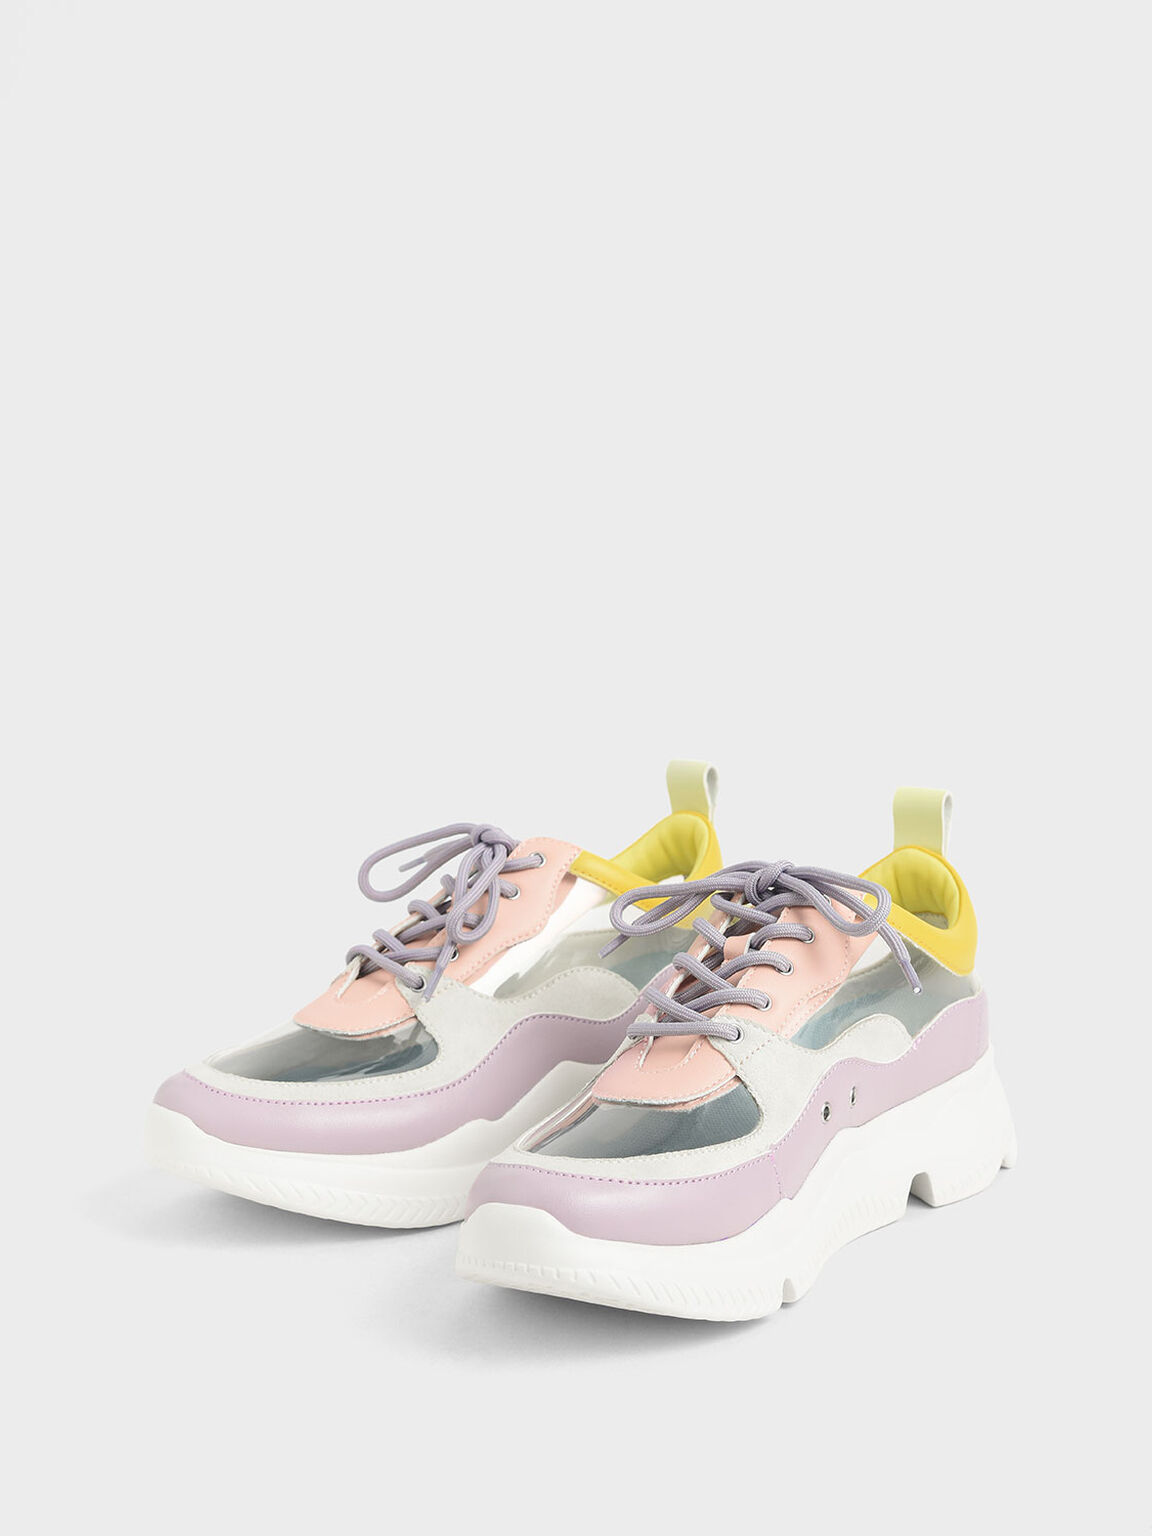 See-Through Chunky Sneakers, Lilac, hi-res